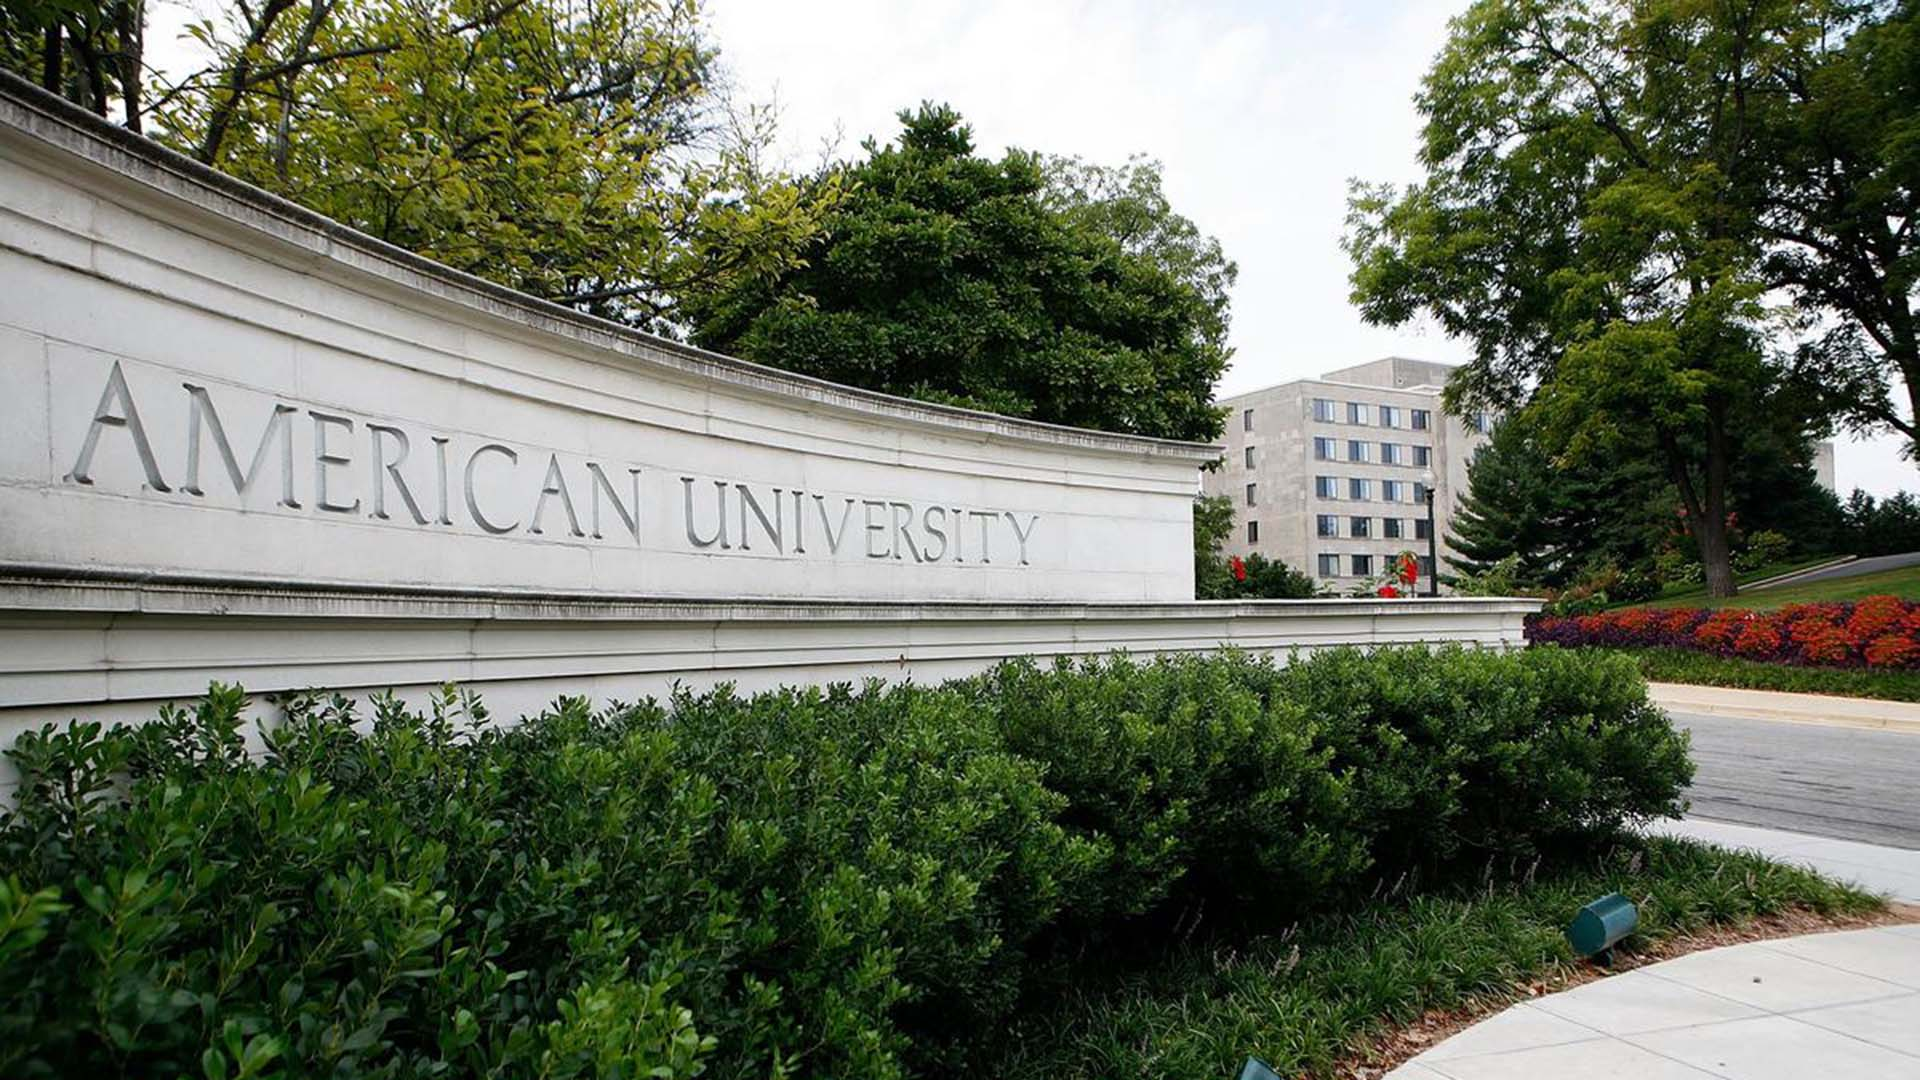 American University, Washington DC